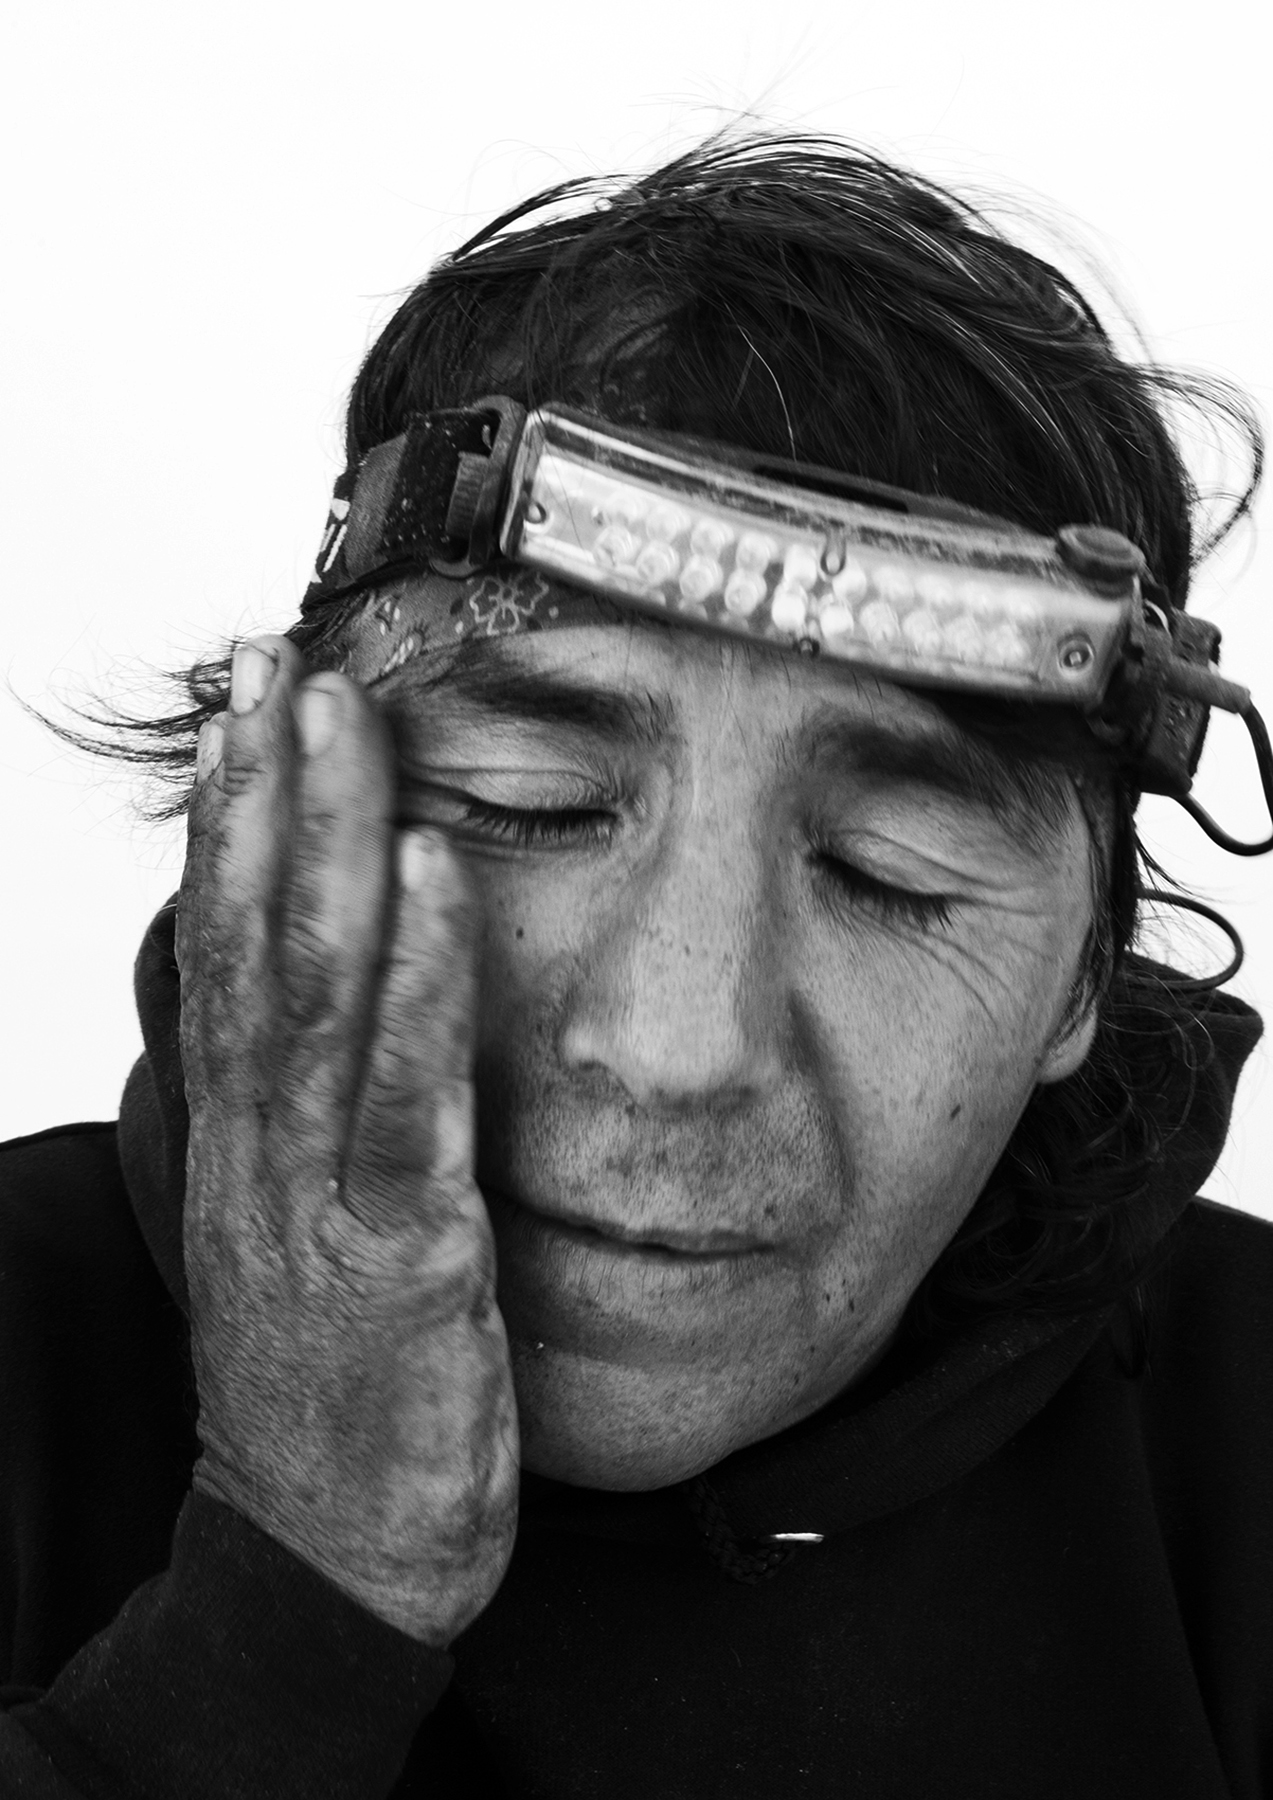 Celso Lopez, 54, Tlaxcala, Mexico.